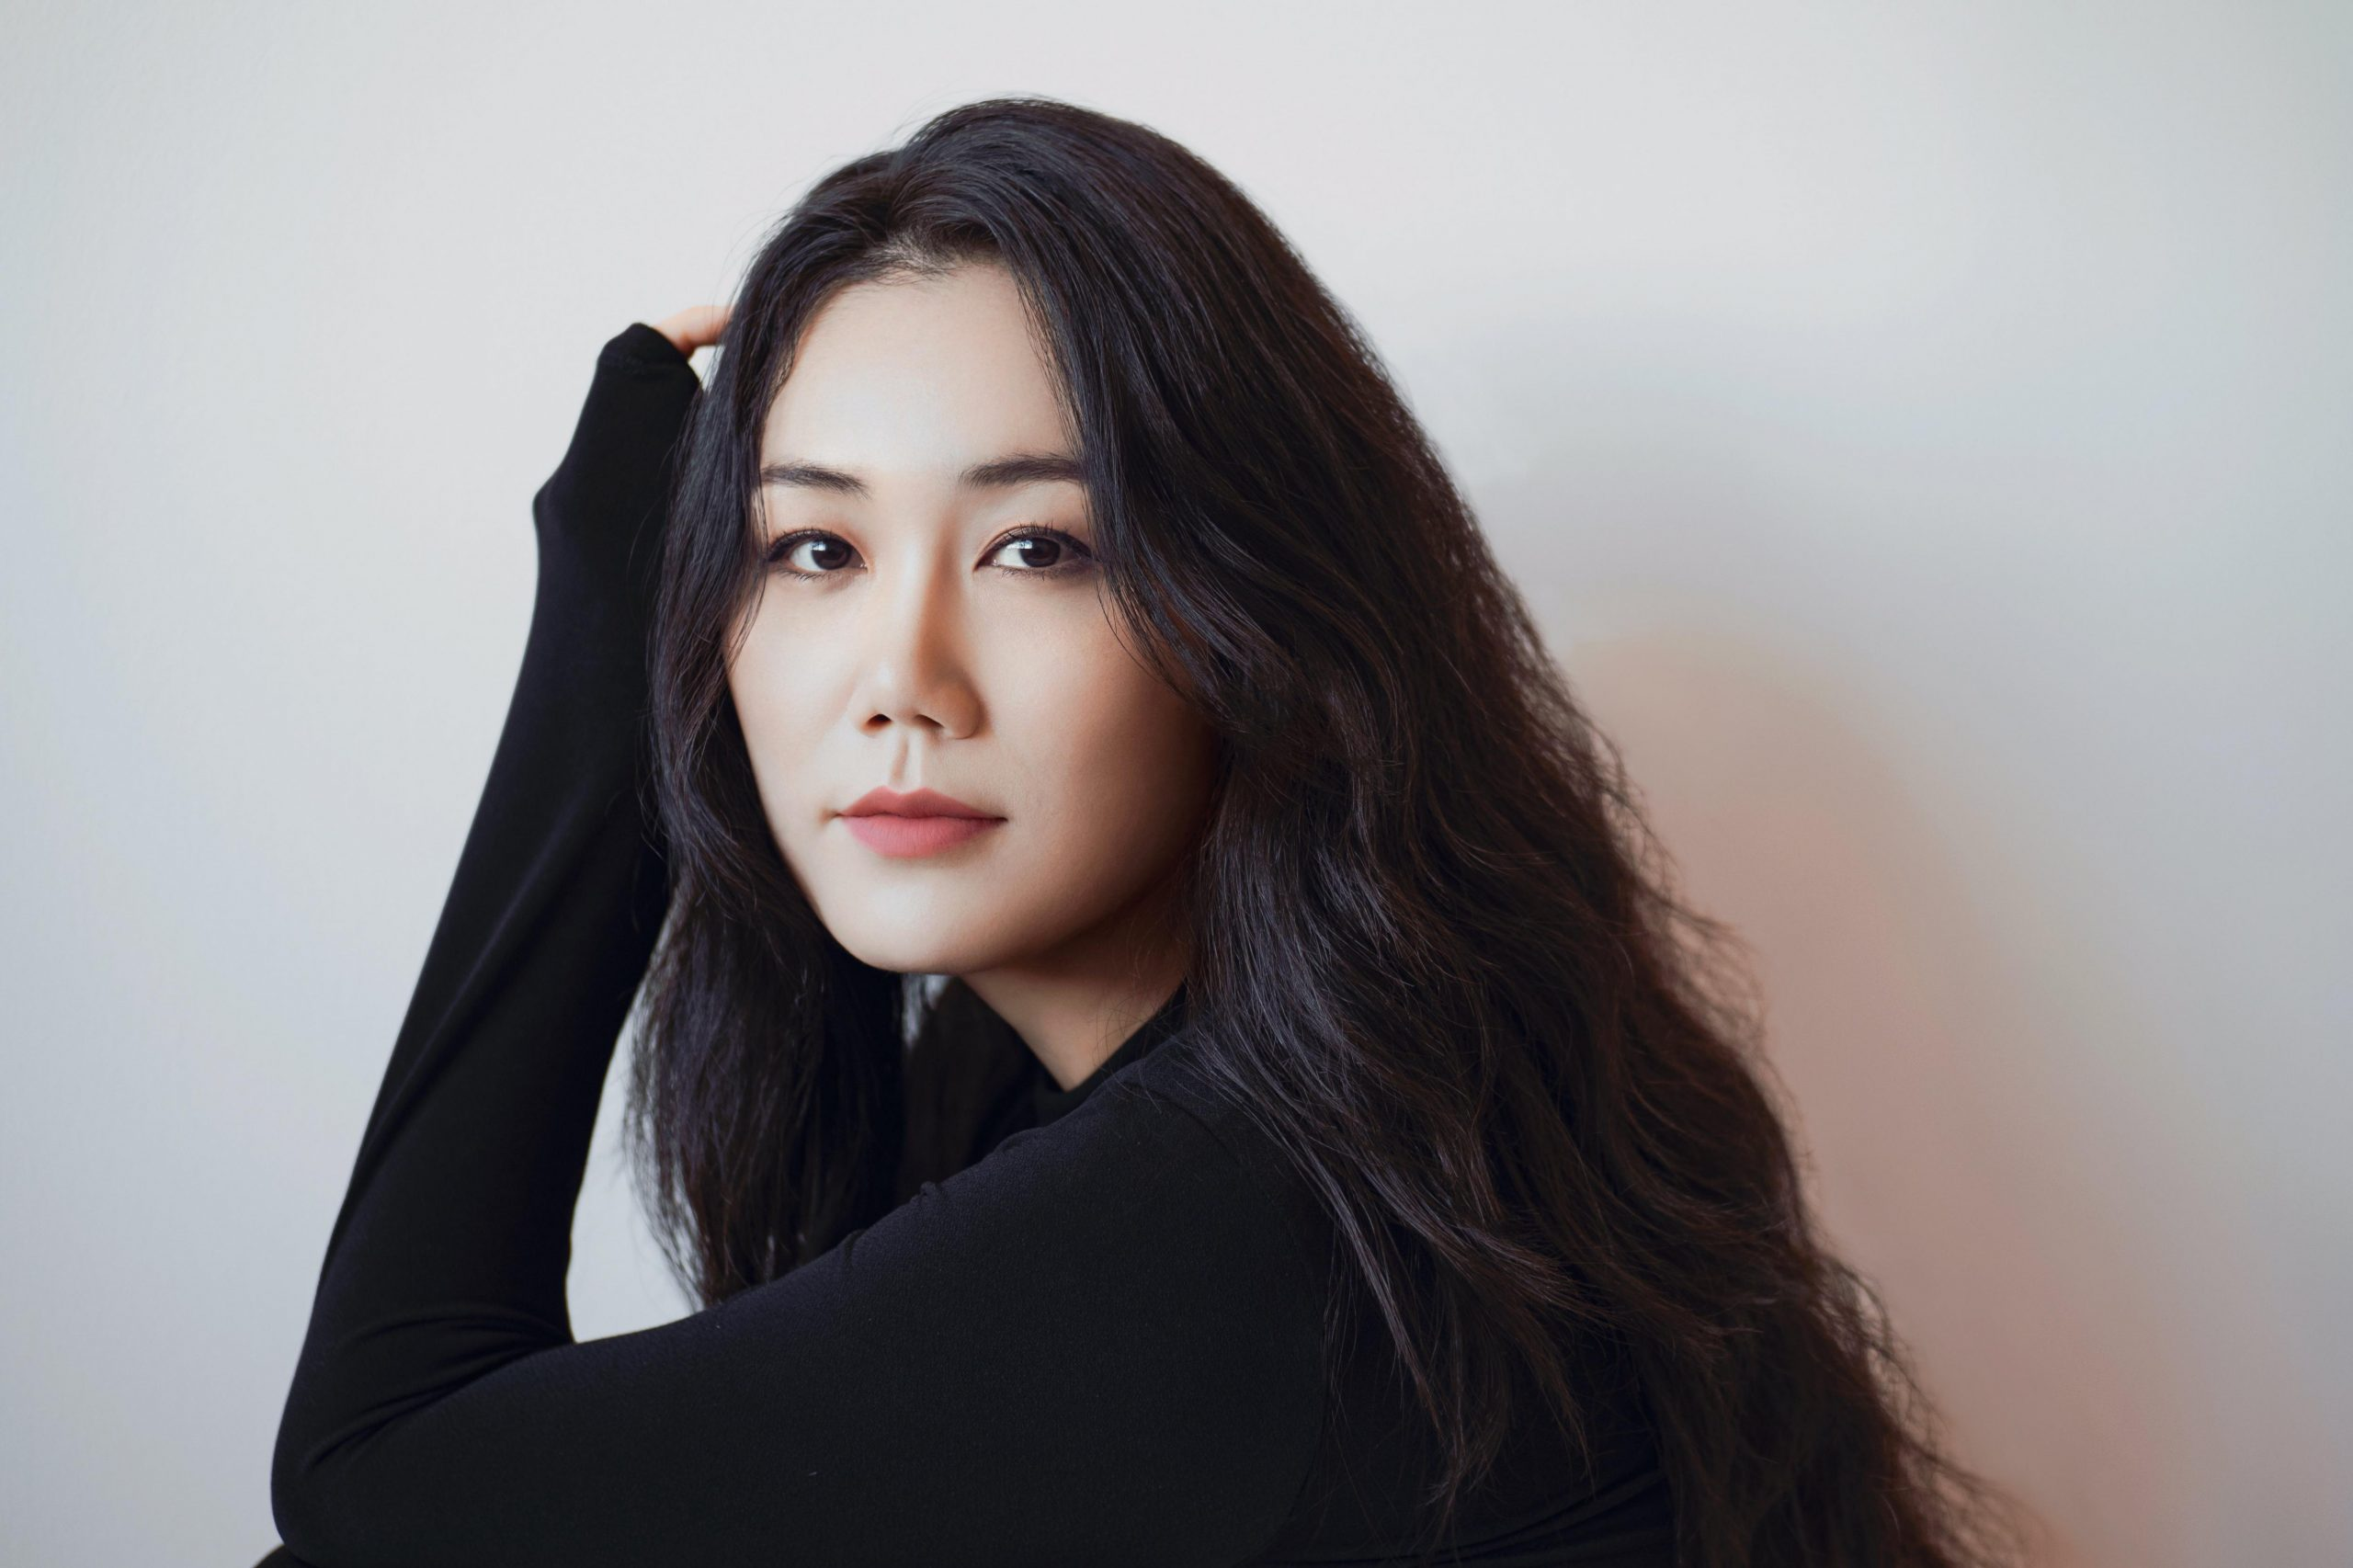 FEATURE: An Idiosyncratic, Personal & Intrepid Storyteller: Jihye Lee – GRAMMY.com